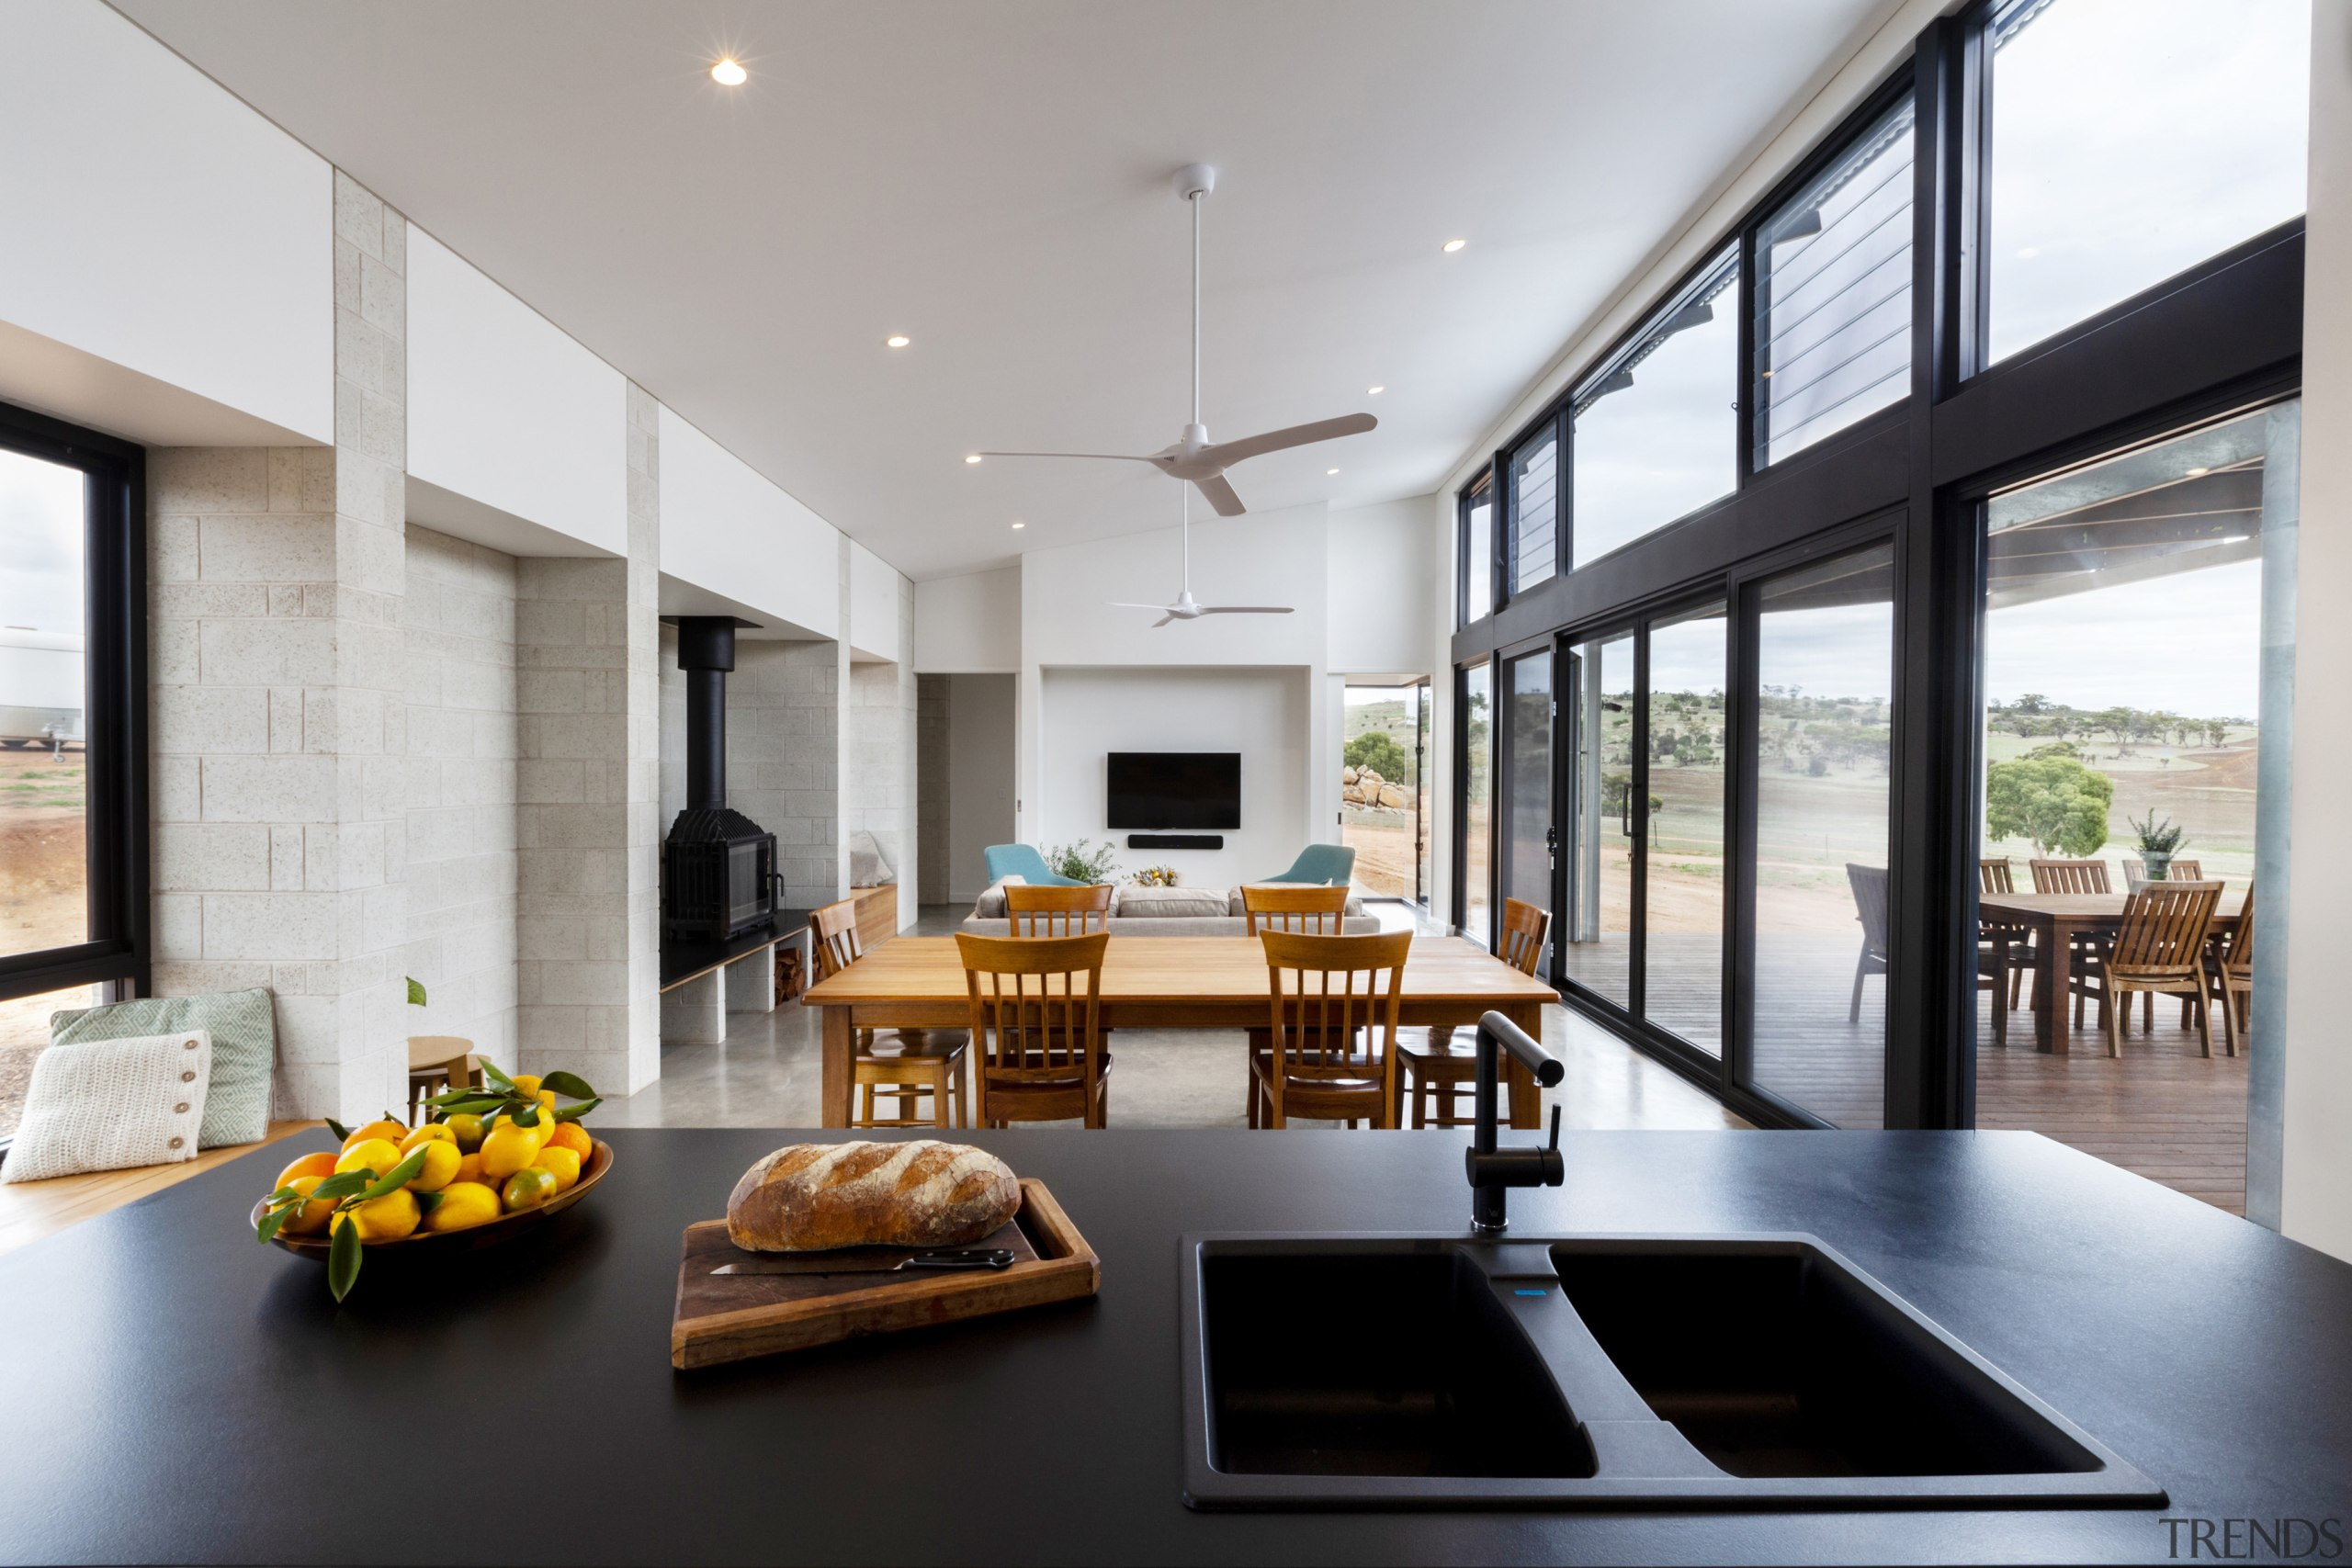 The expansive living and entertaining space is not